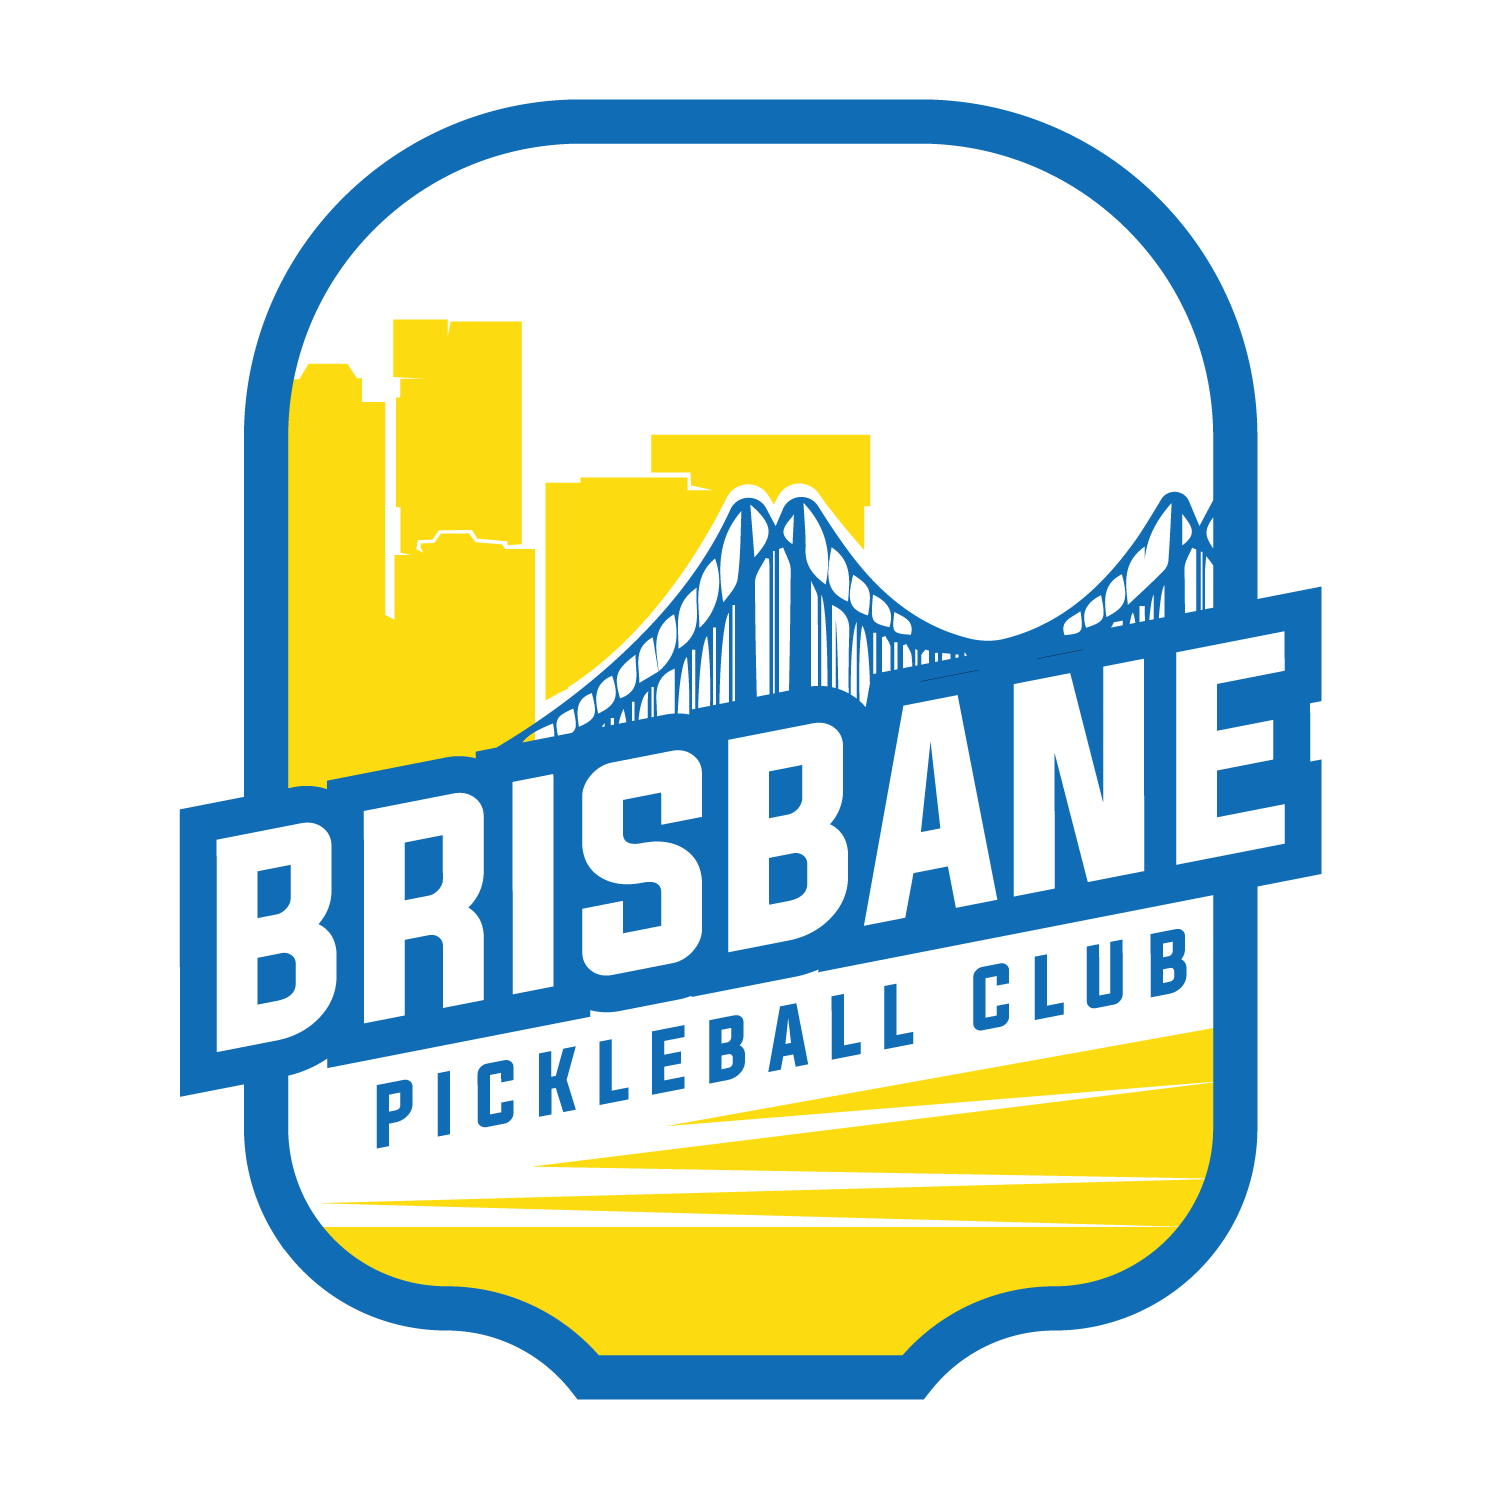 Brisbane Pickleball Club